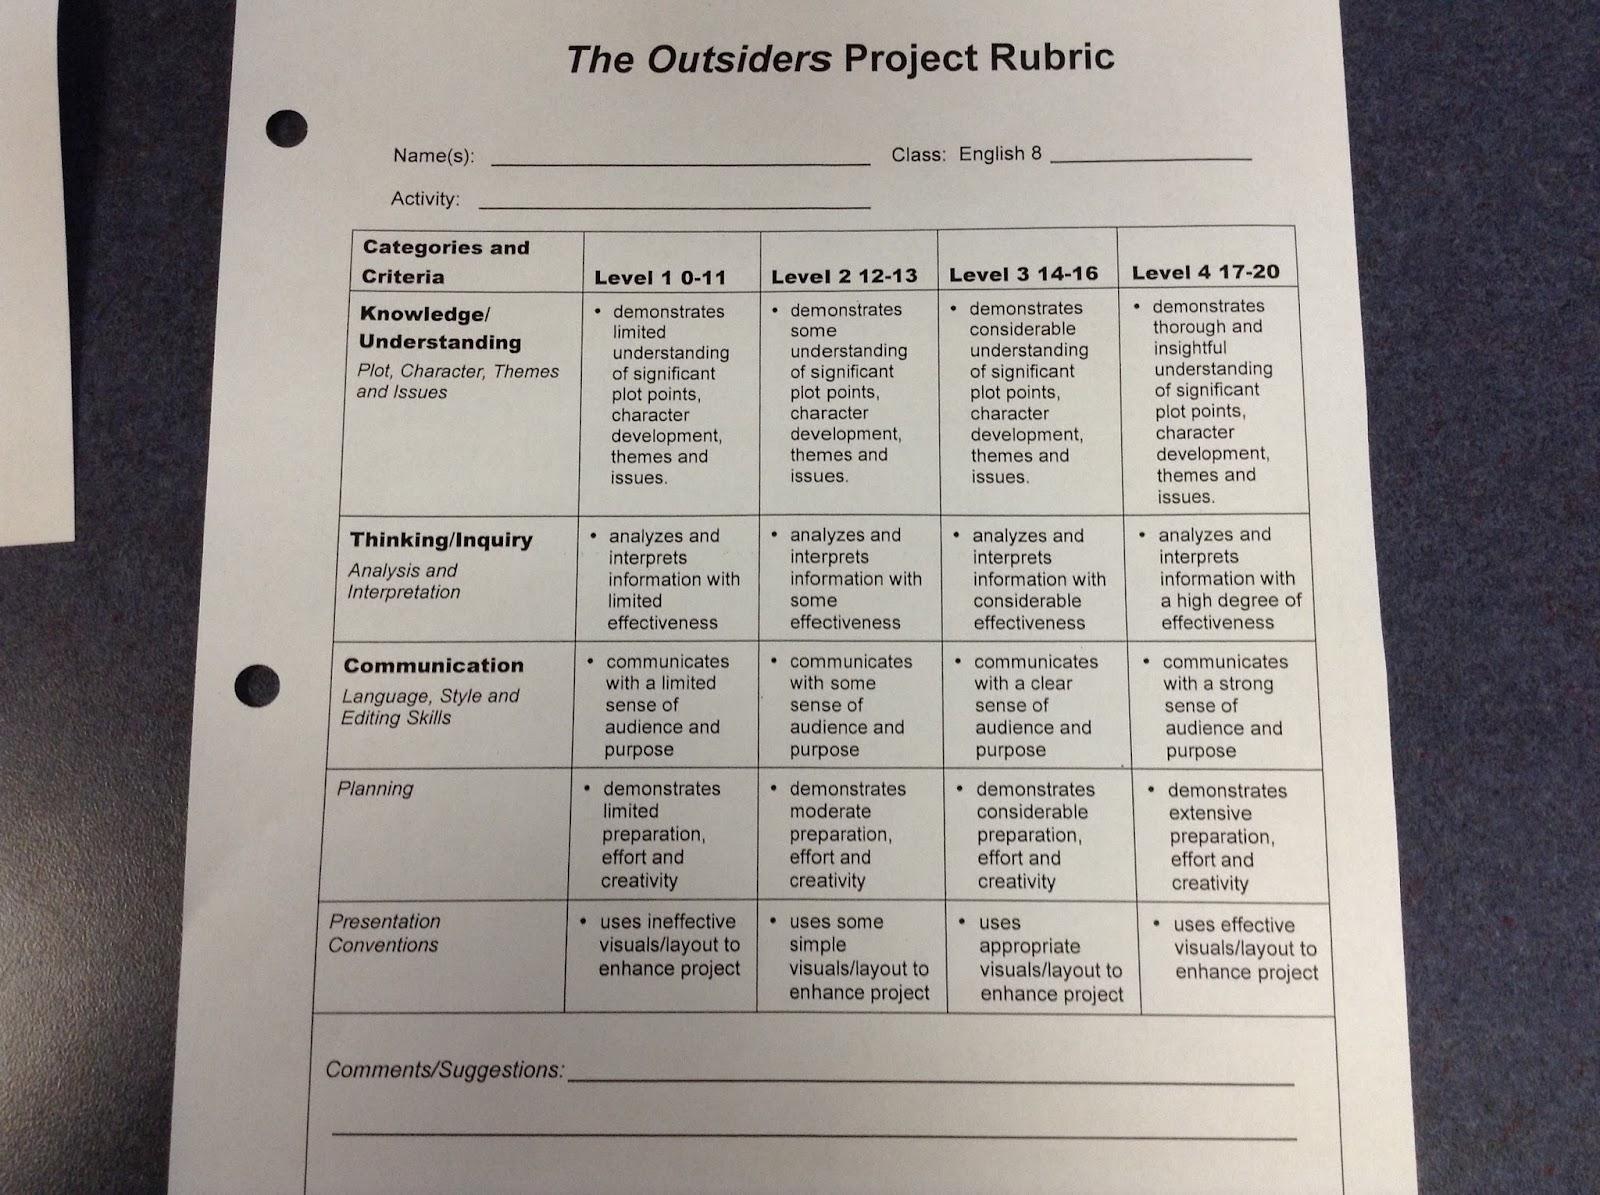 outsiders essay rubric Free outsiders papers, essays, and research papers these results are sorted by most relevant first (ranked search) you may also sort these by color rating or essay length.